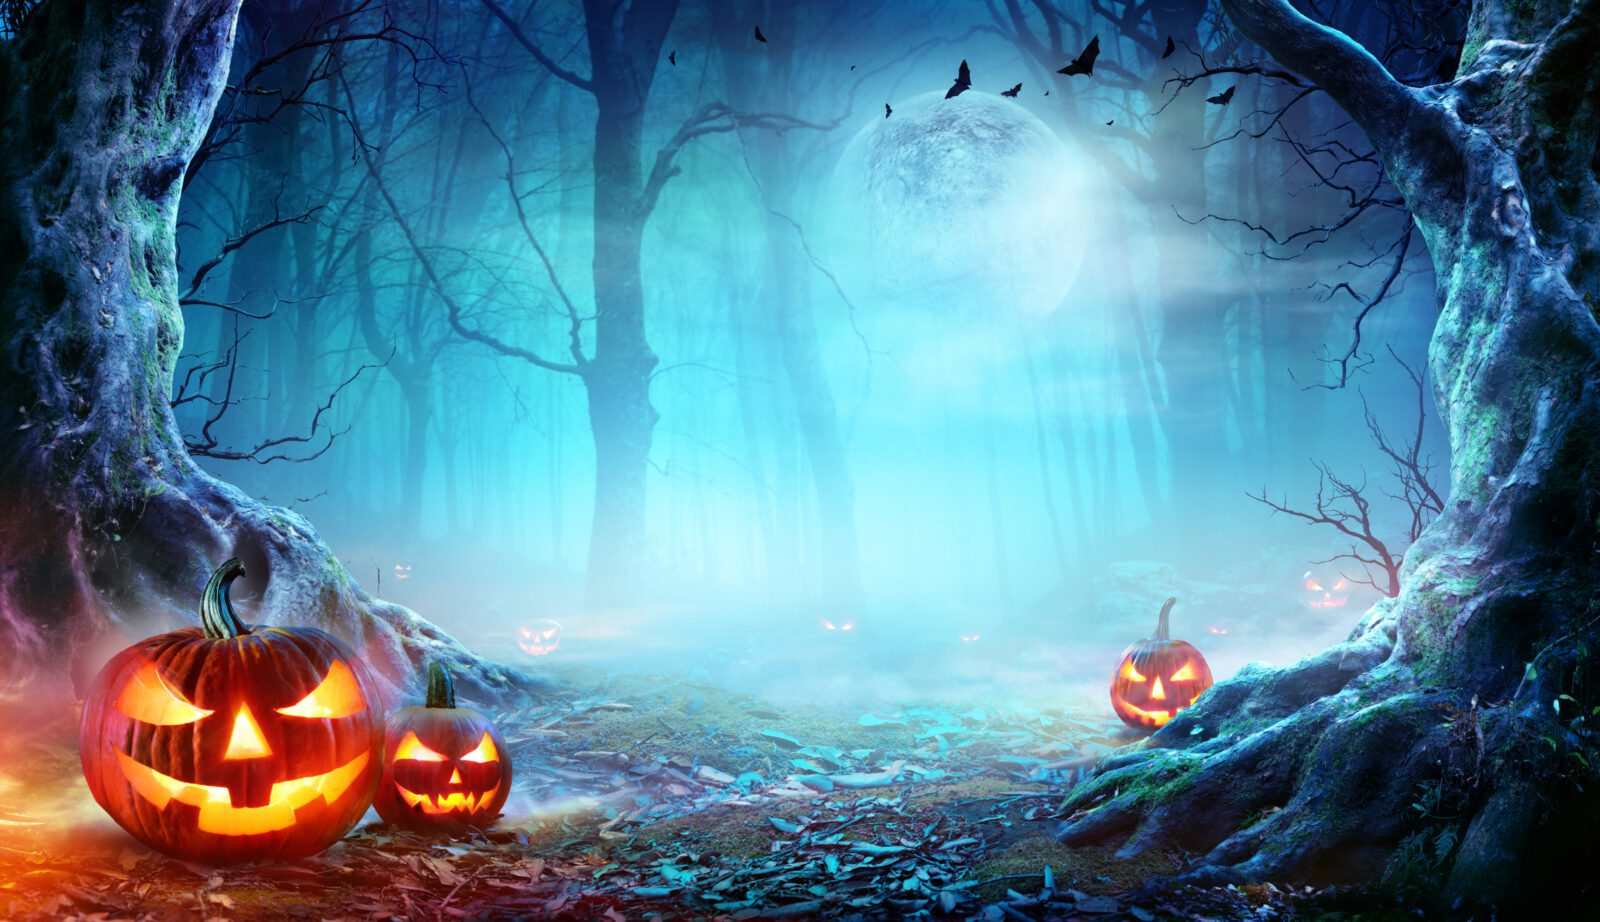 Jack O' Lanterns In Spooky Forest with moonlight and fog in the background.